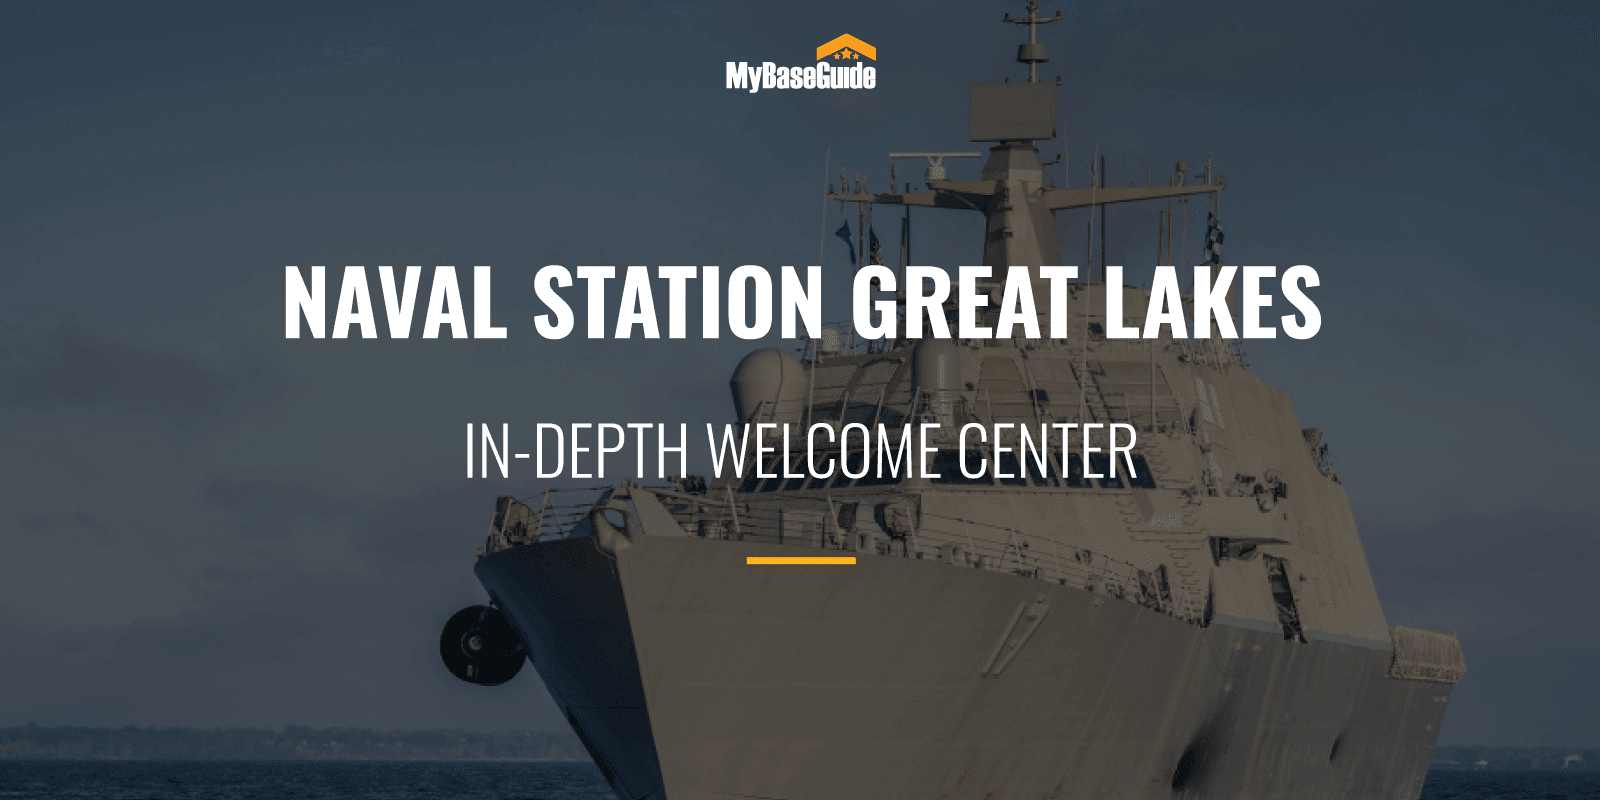 Naval Station Great Lakes: In-Depth Welcome Center